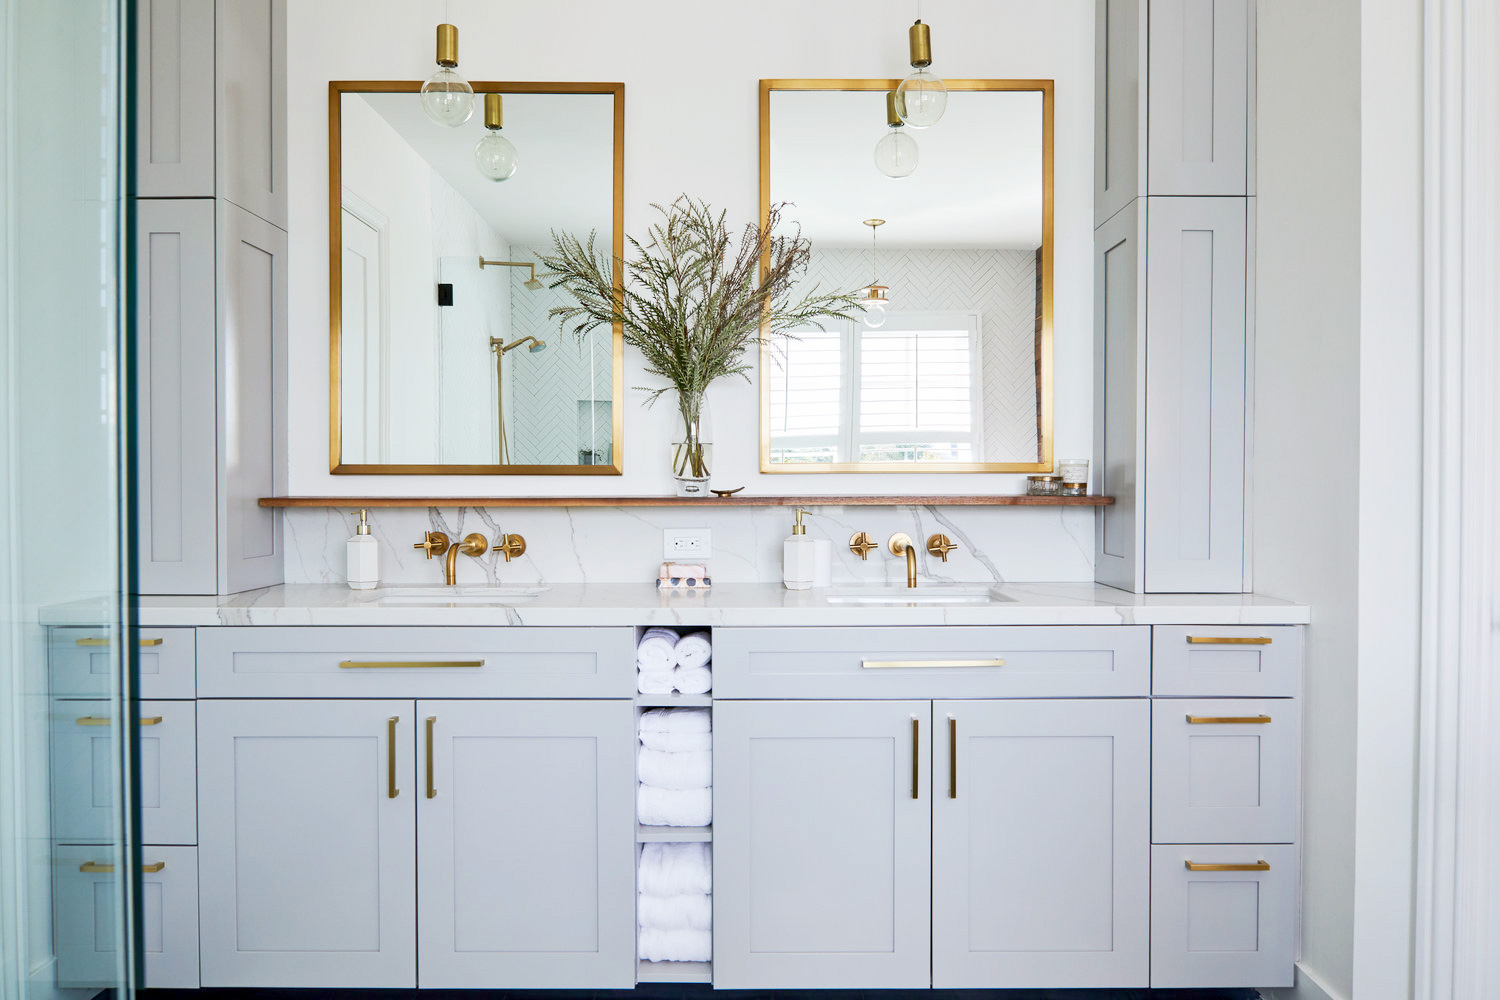 Tara's Tips: Master Bathroom